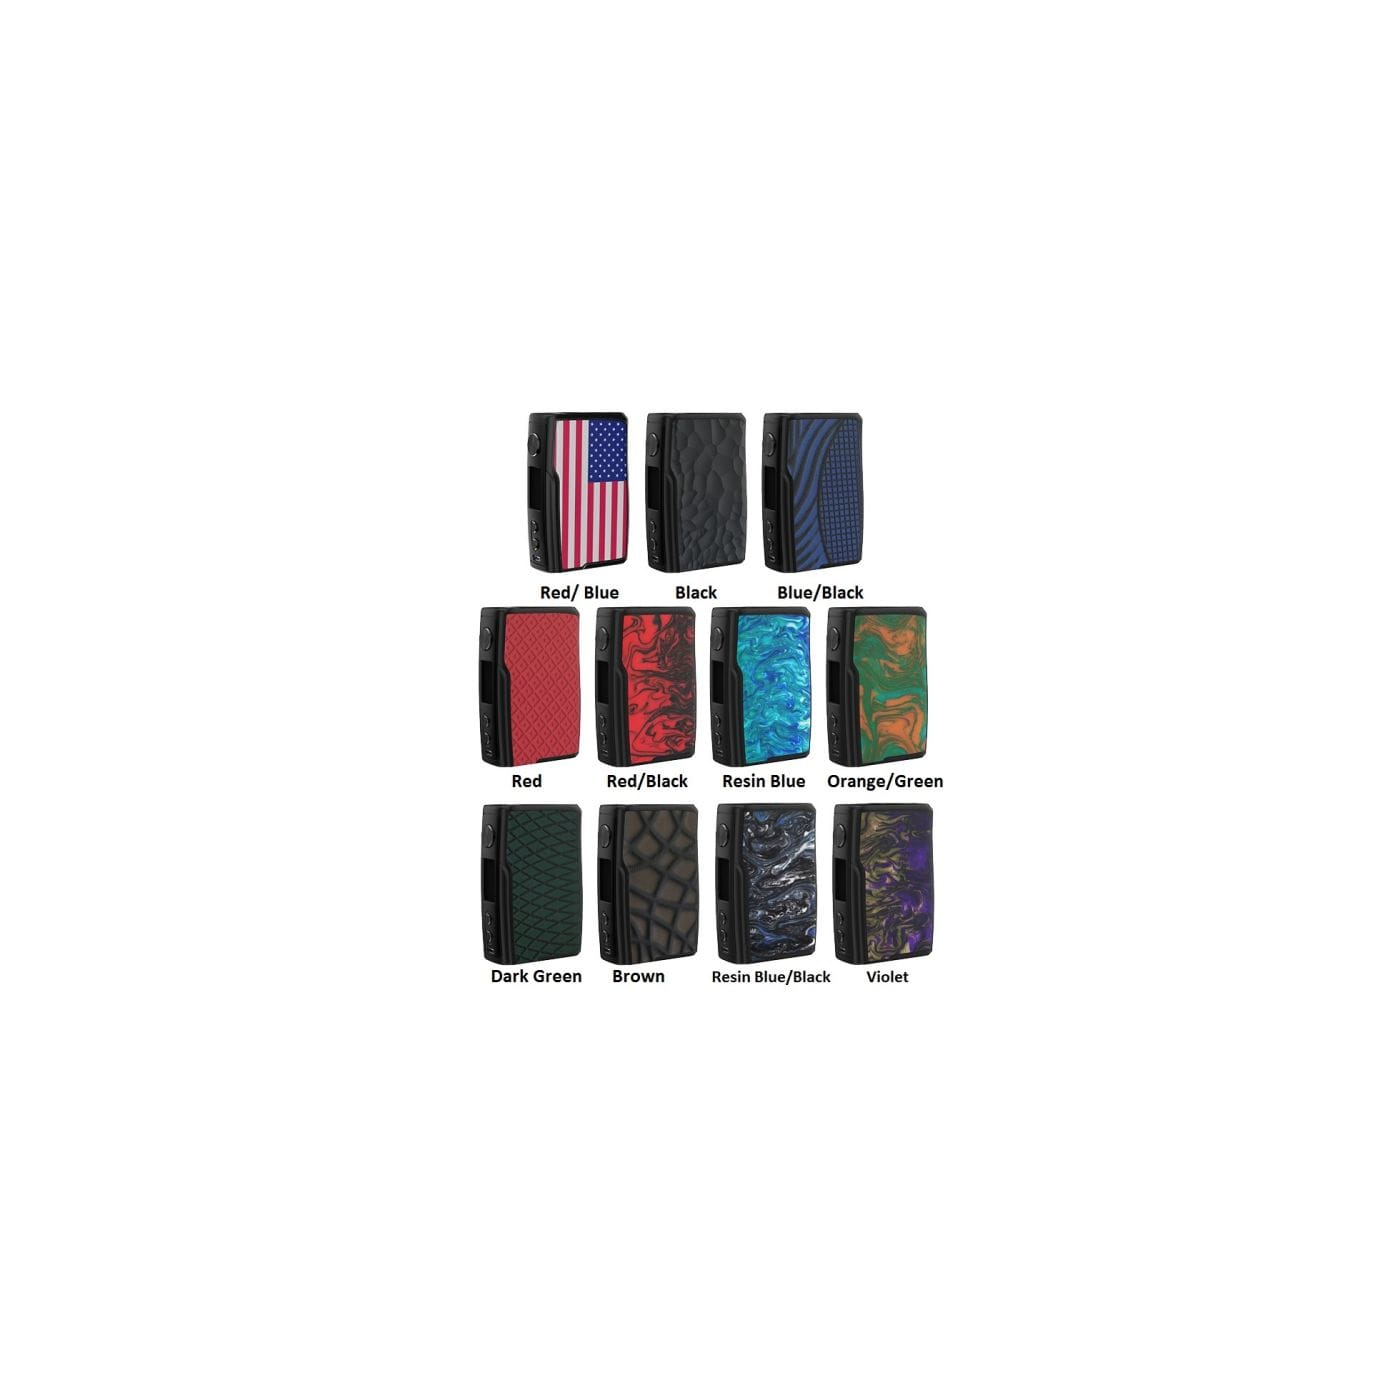 Vandy Vape Swell Box Mod